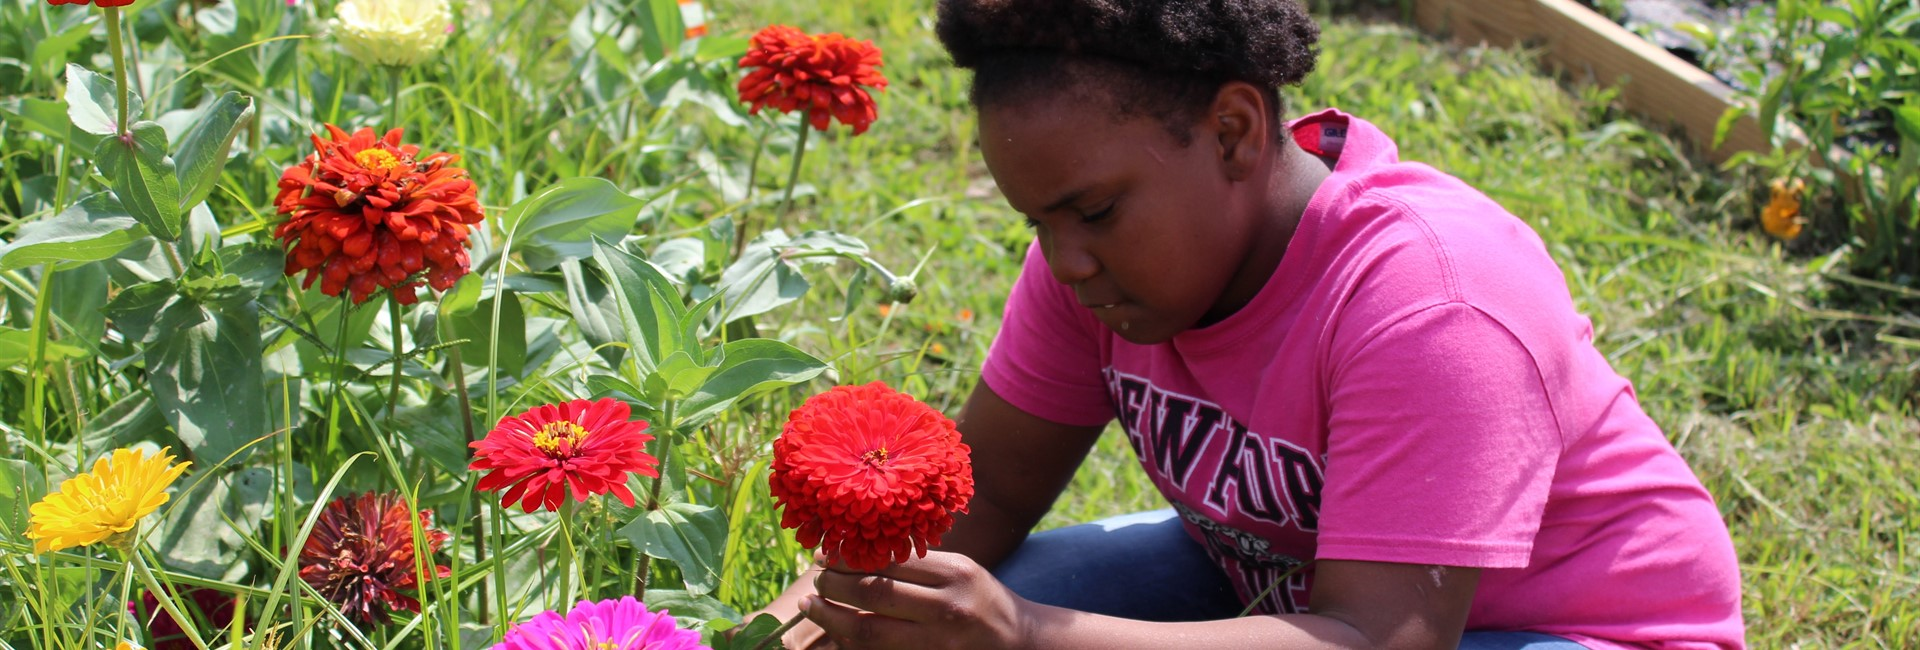 Student picks flowers for the flower arrangements the garden club is selling.